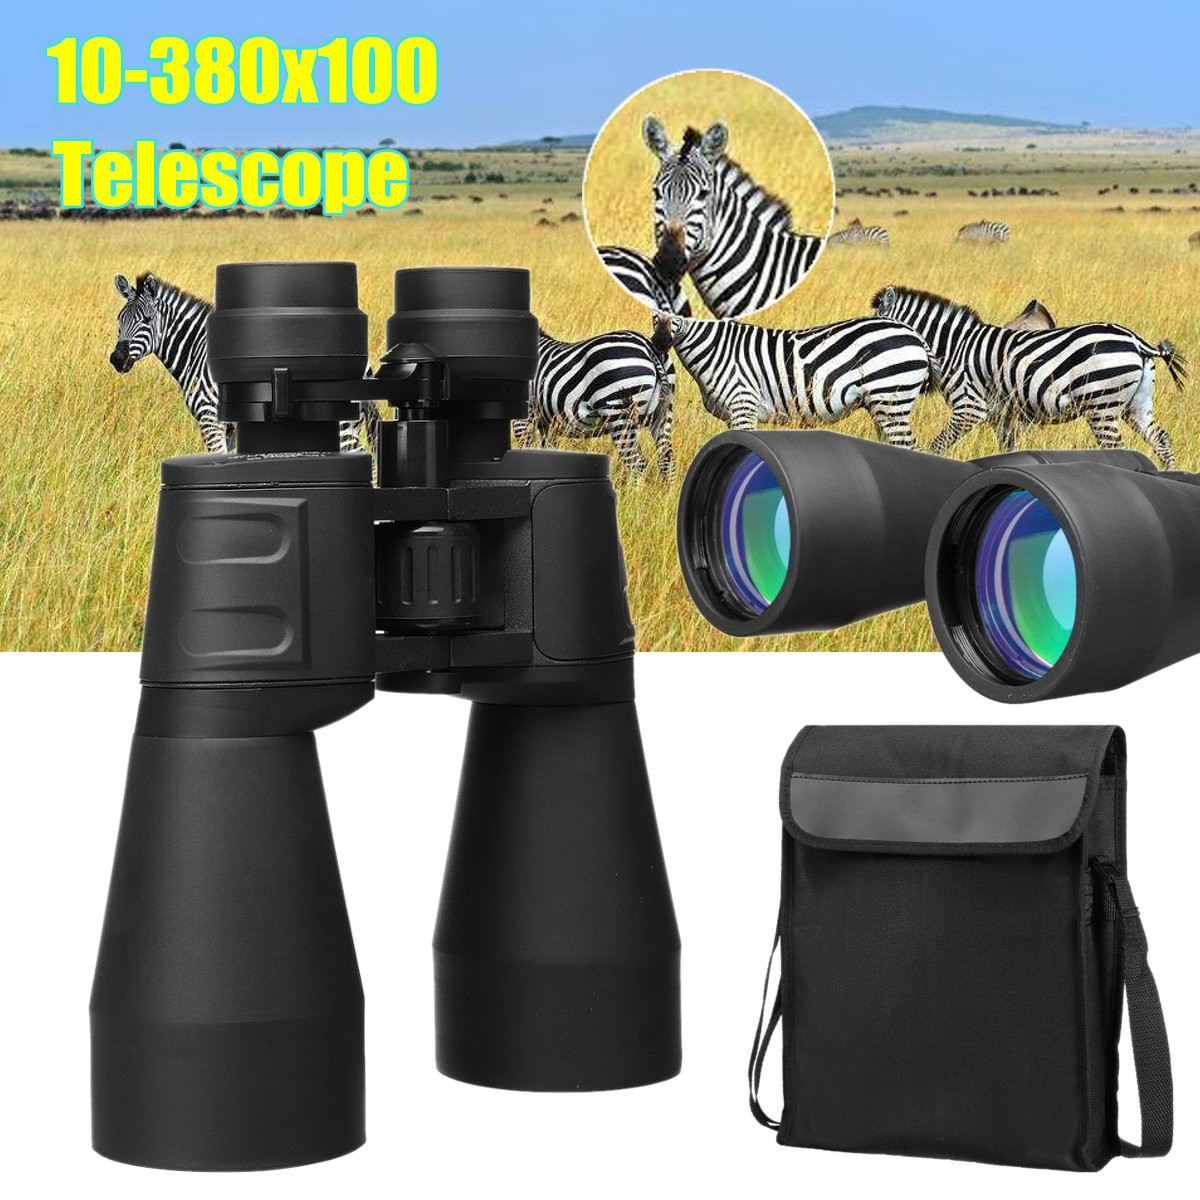 Image result wey dey for bushnell binoculars 10-180x100 magnification zoom binoculars night vision